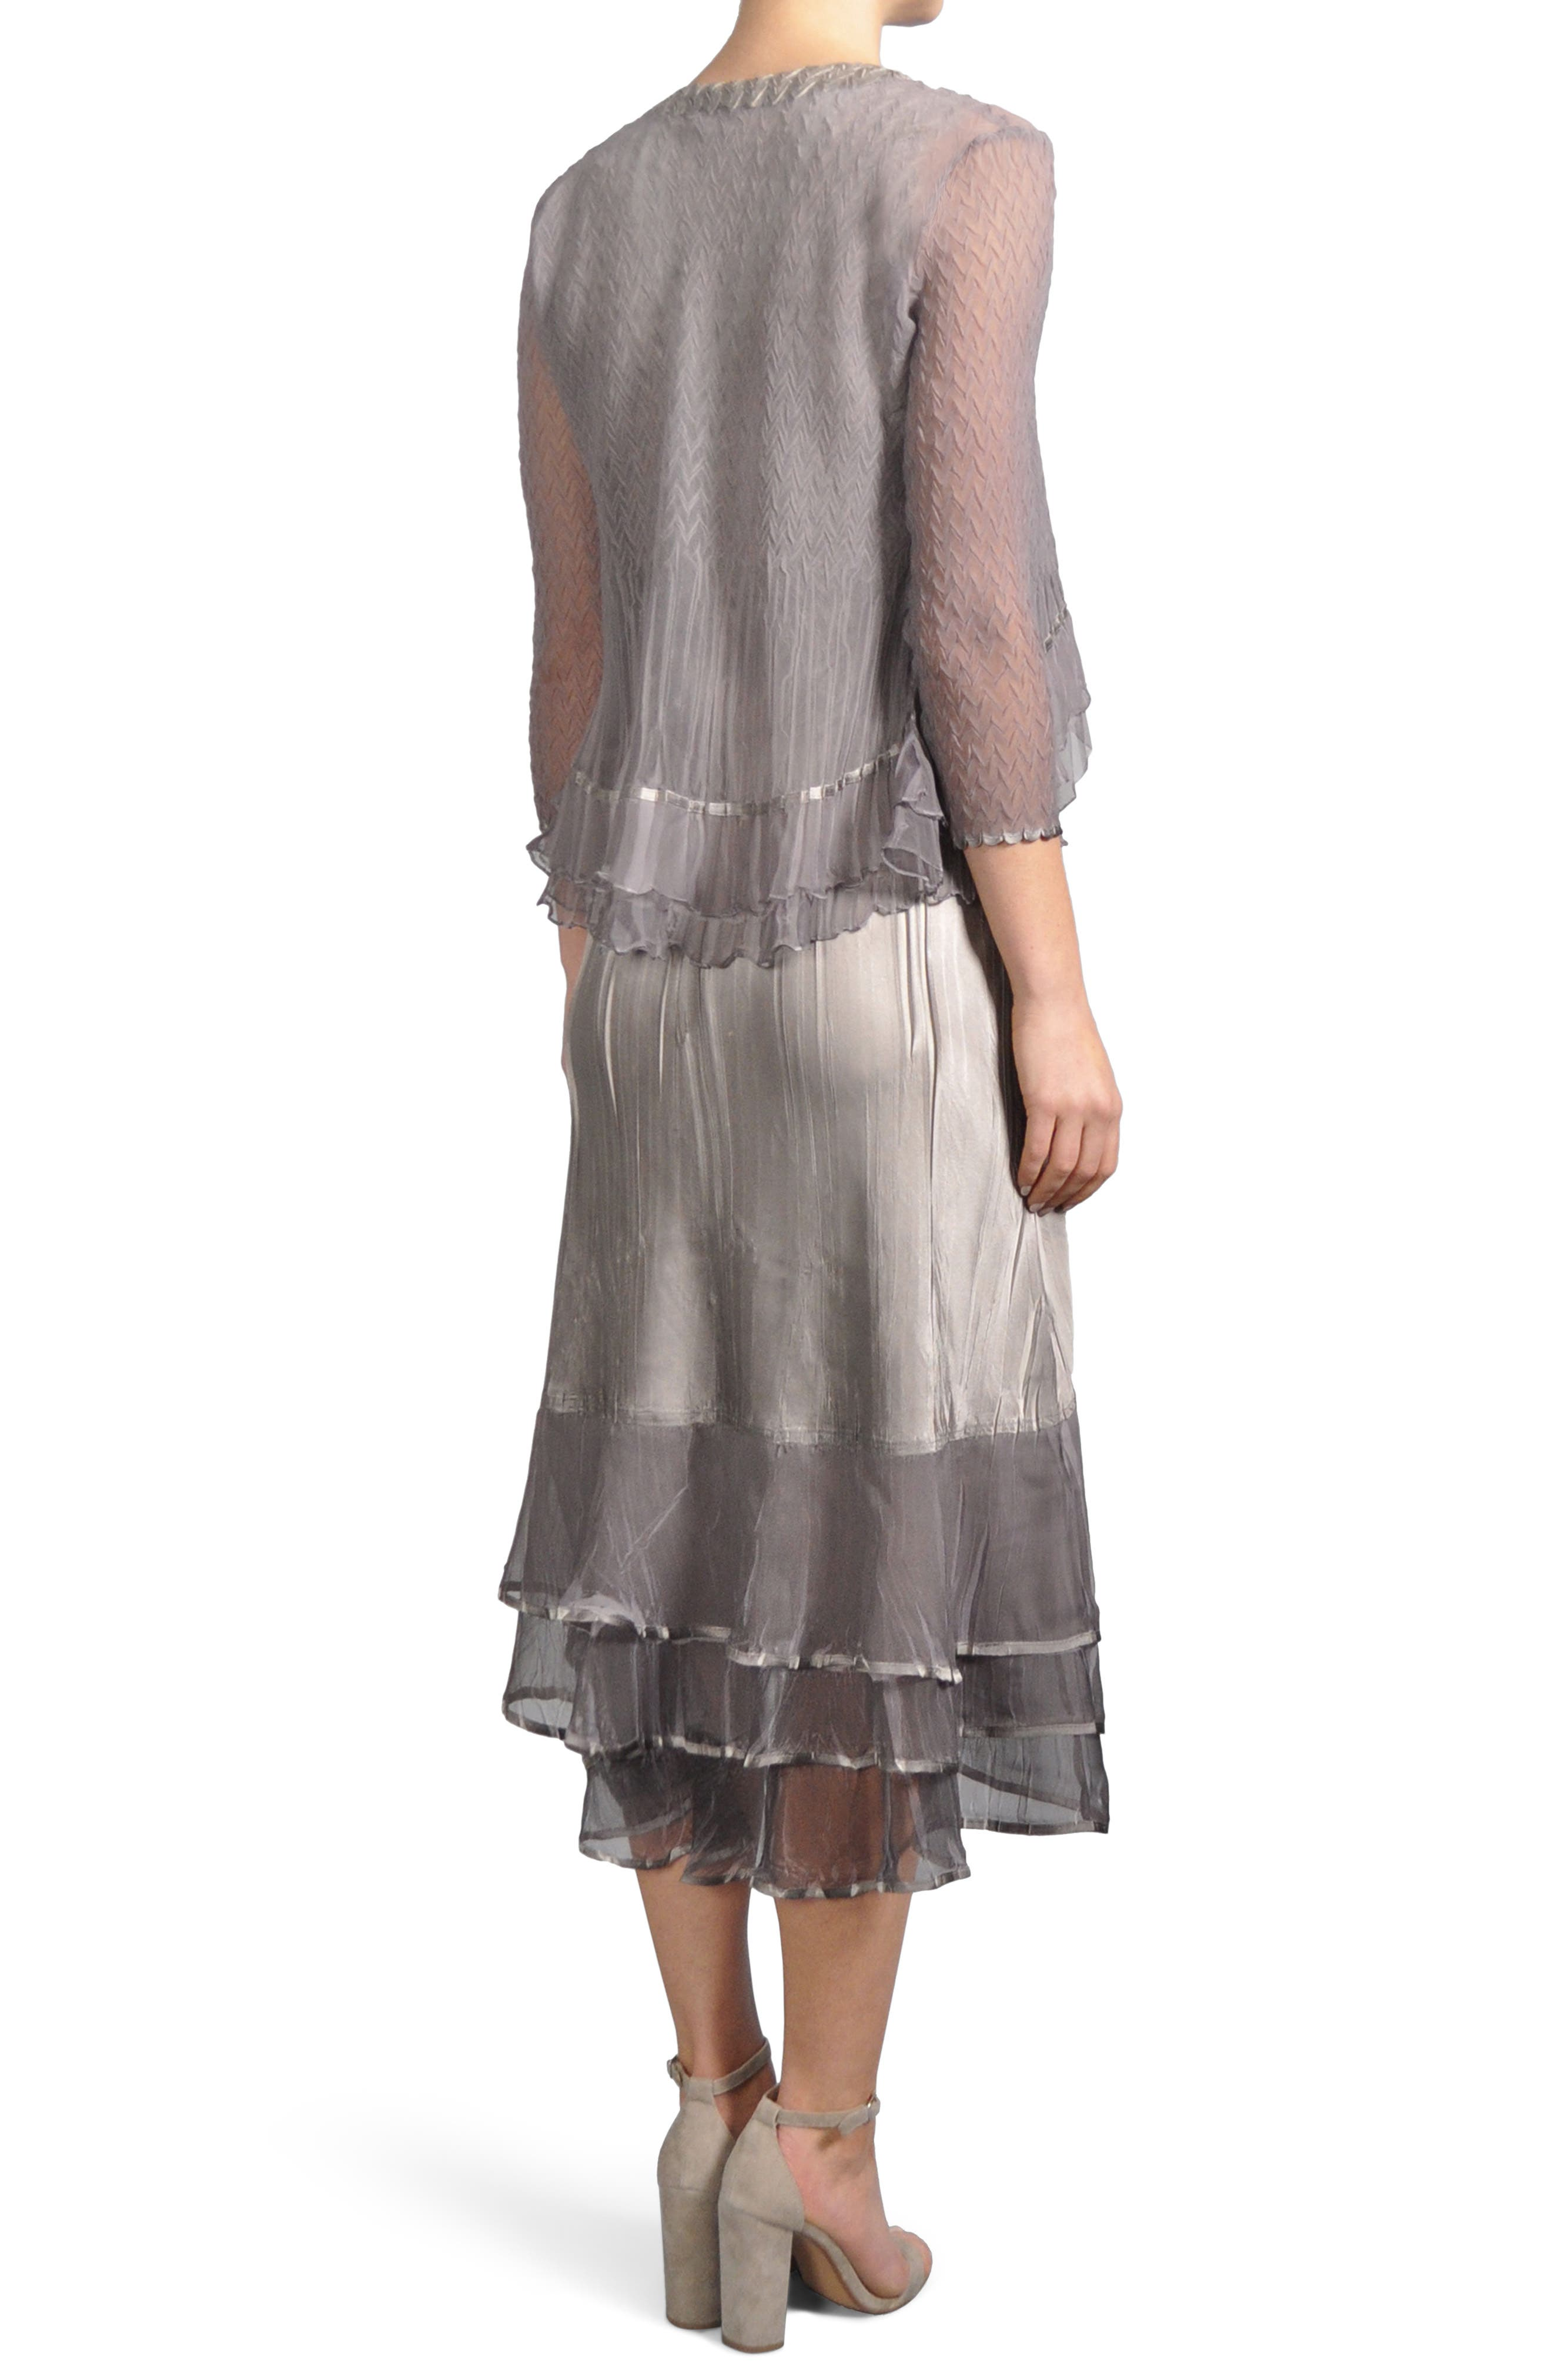 Embellished Tiered Hem Dress With Jacket,                             Alternate thumbnail 3, color,                             Oyster Smoke Ombre